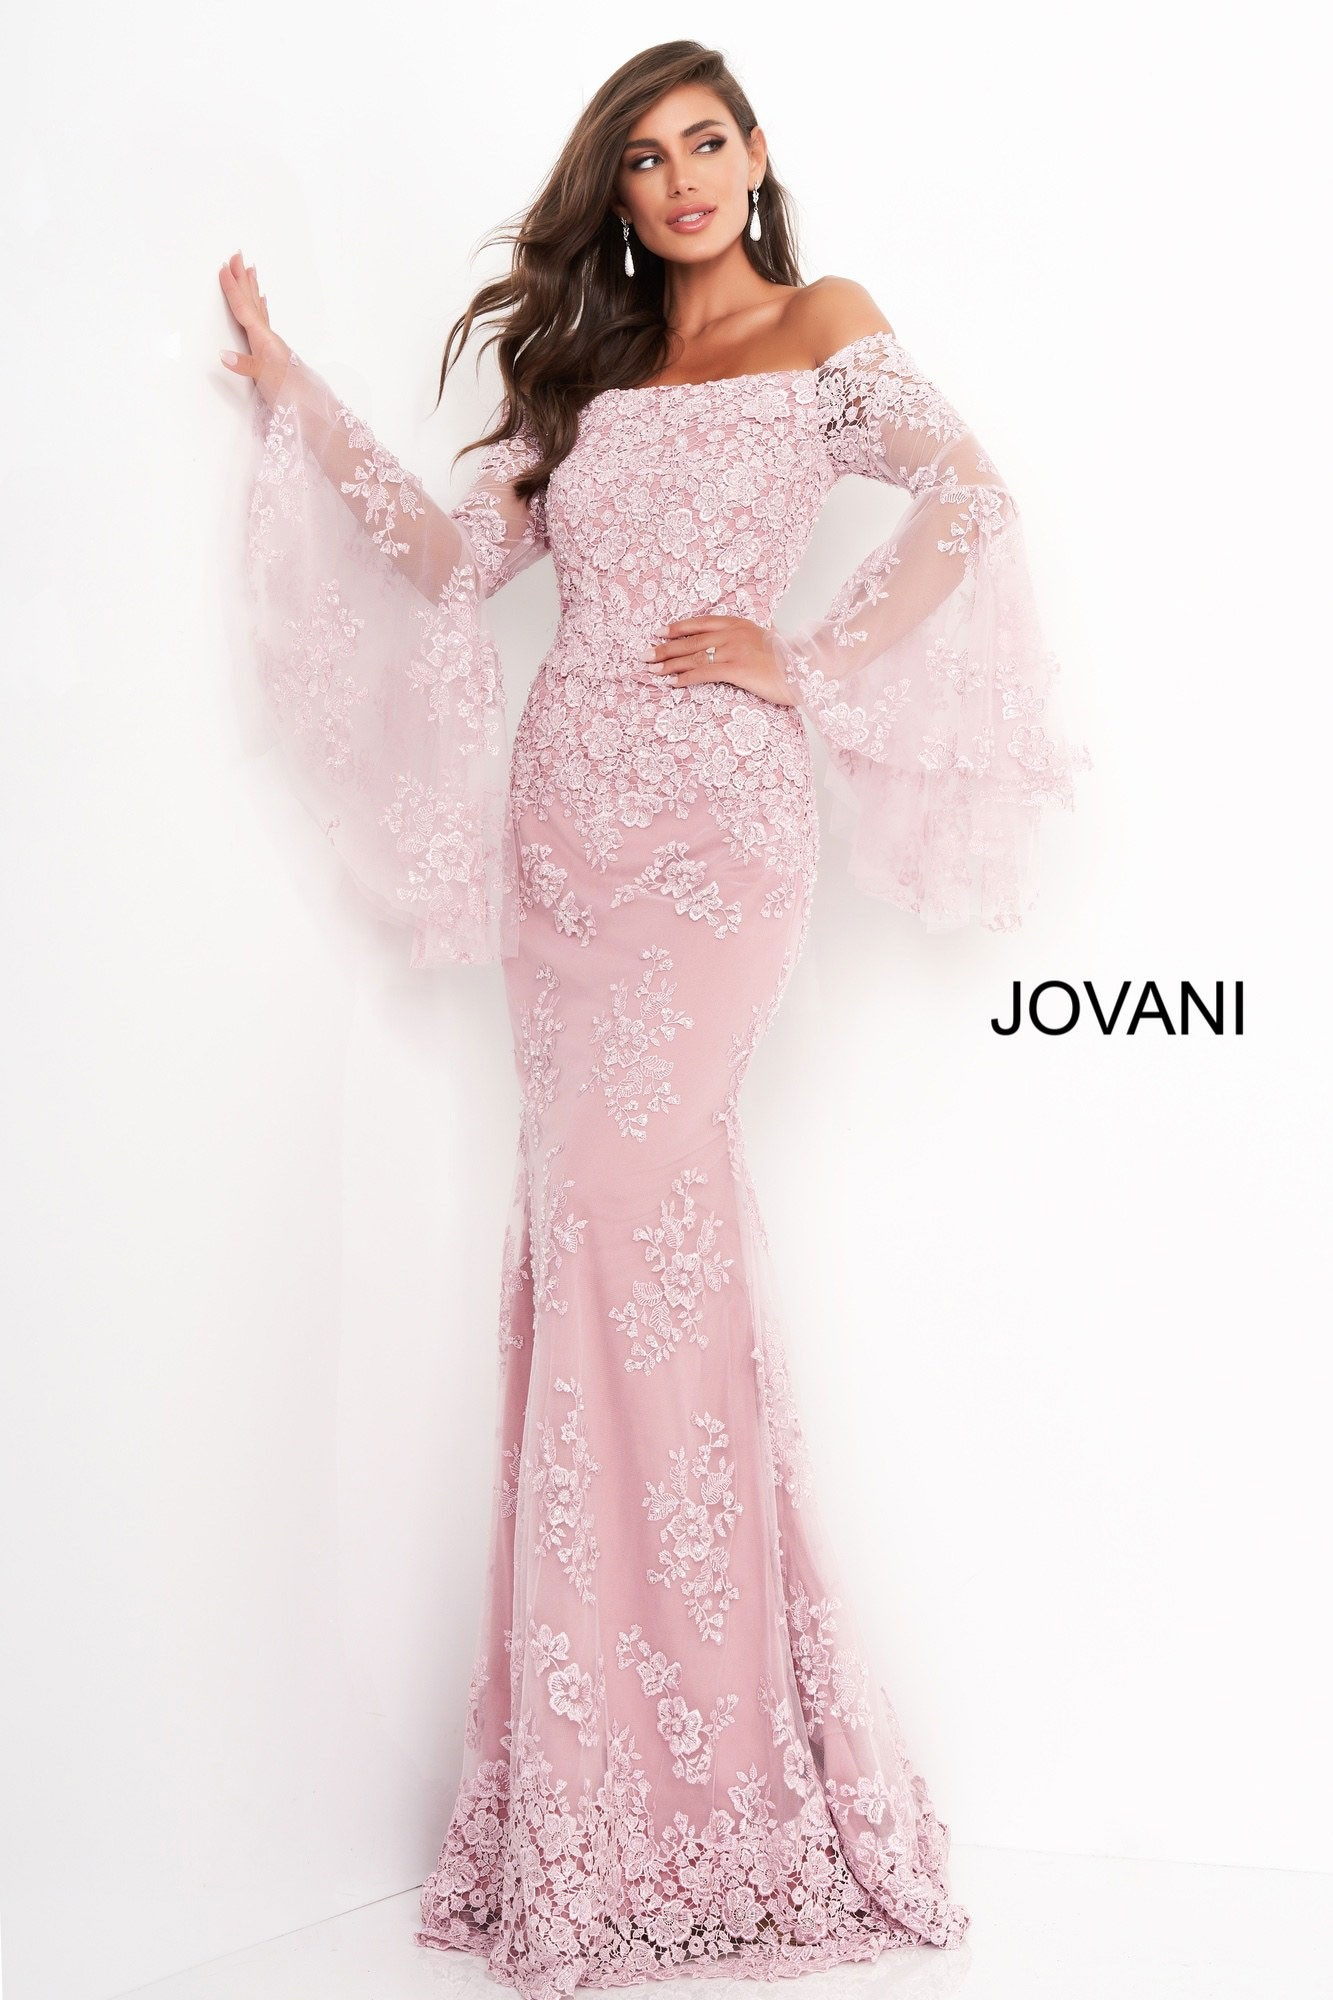 Jovani 02570 Bell Sleeve Lace Evening Dress